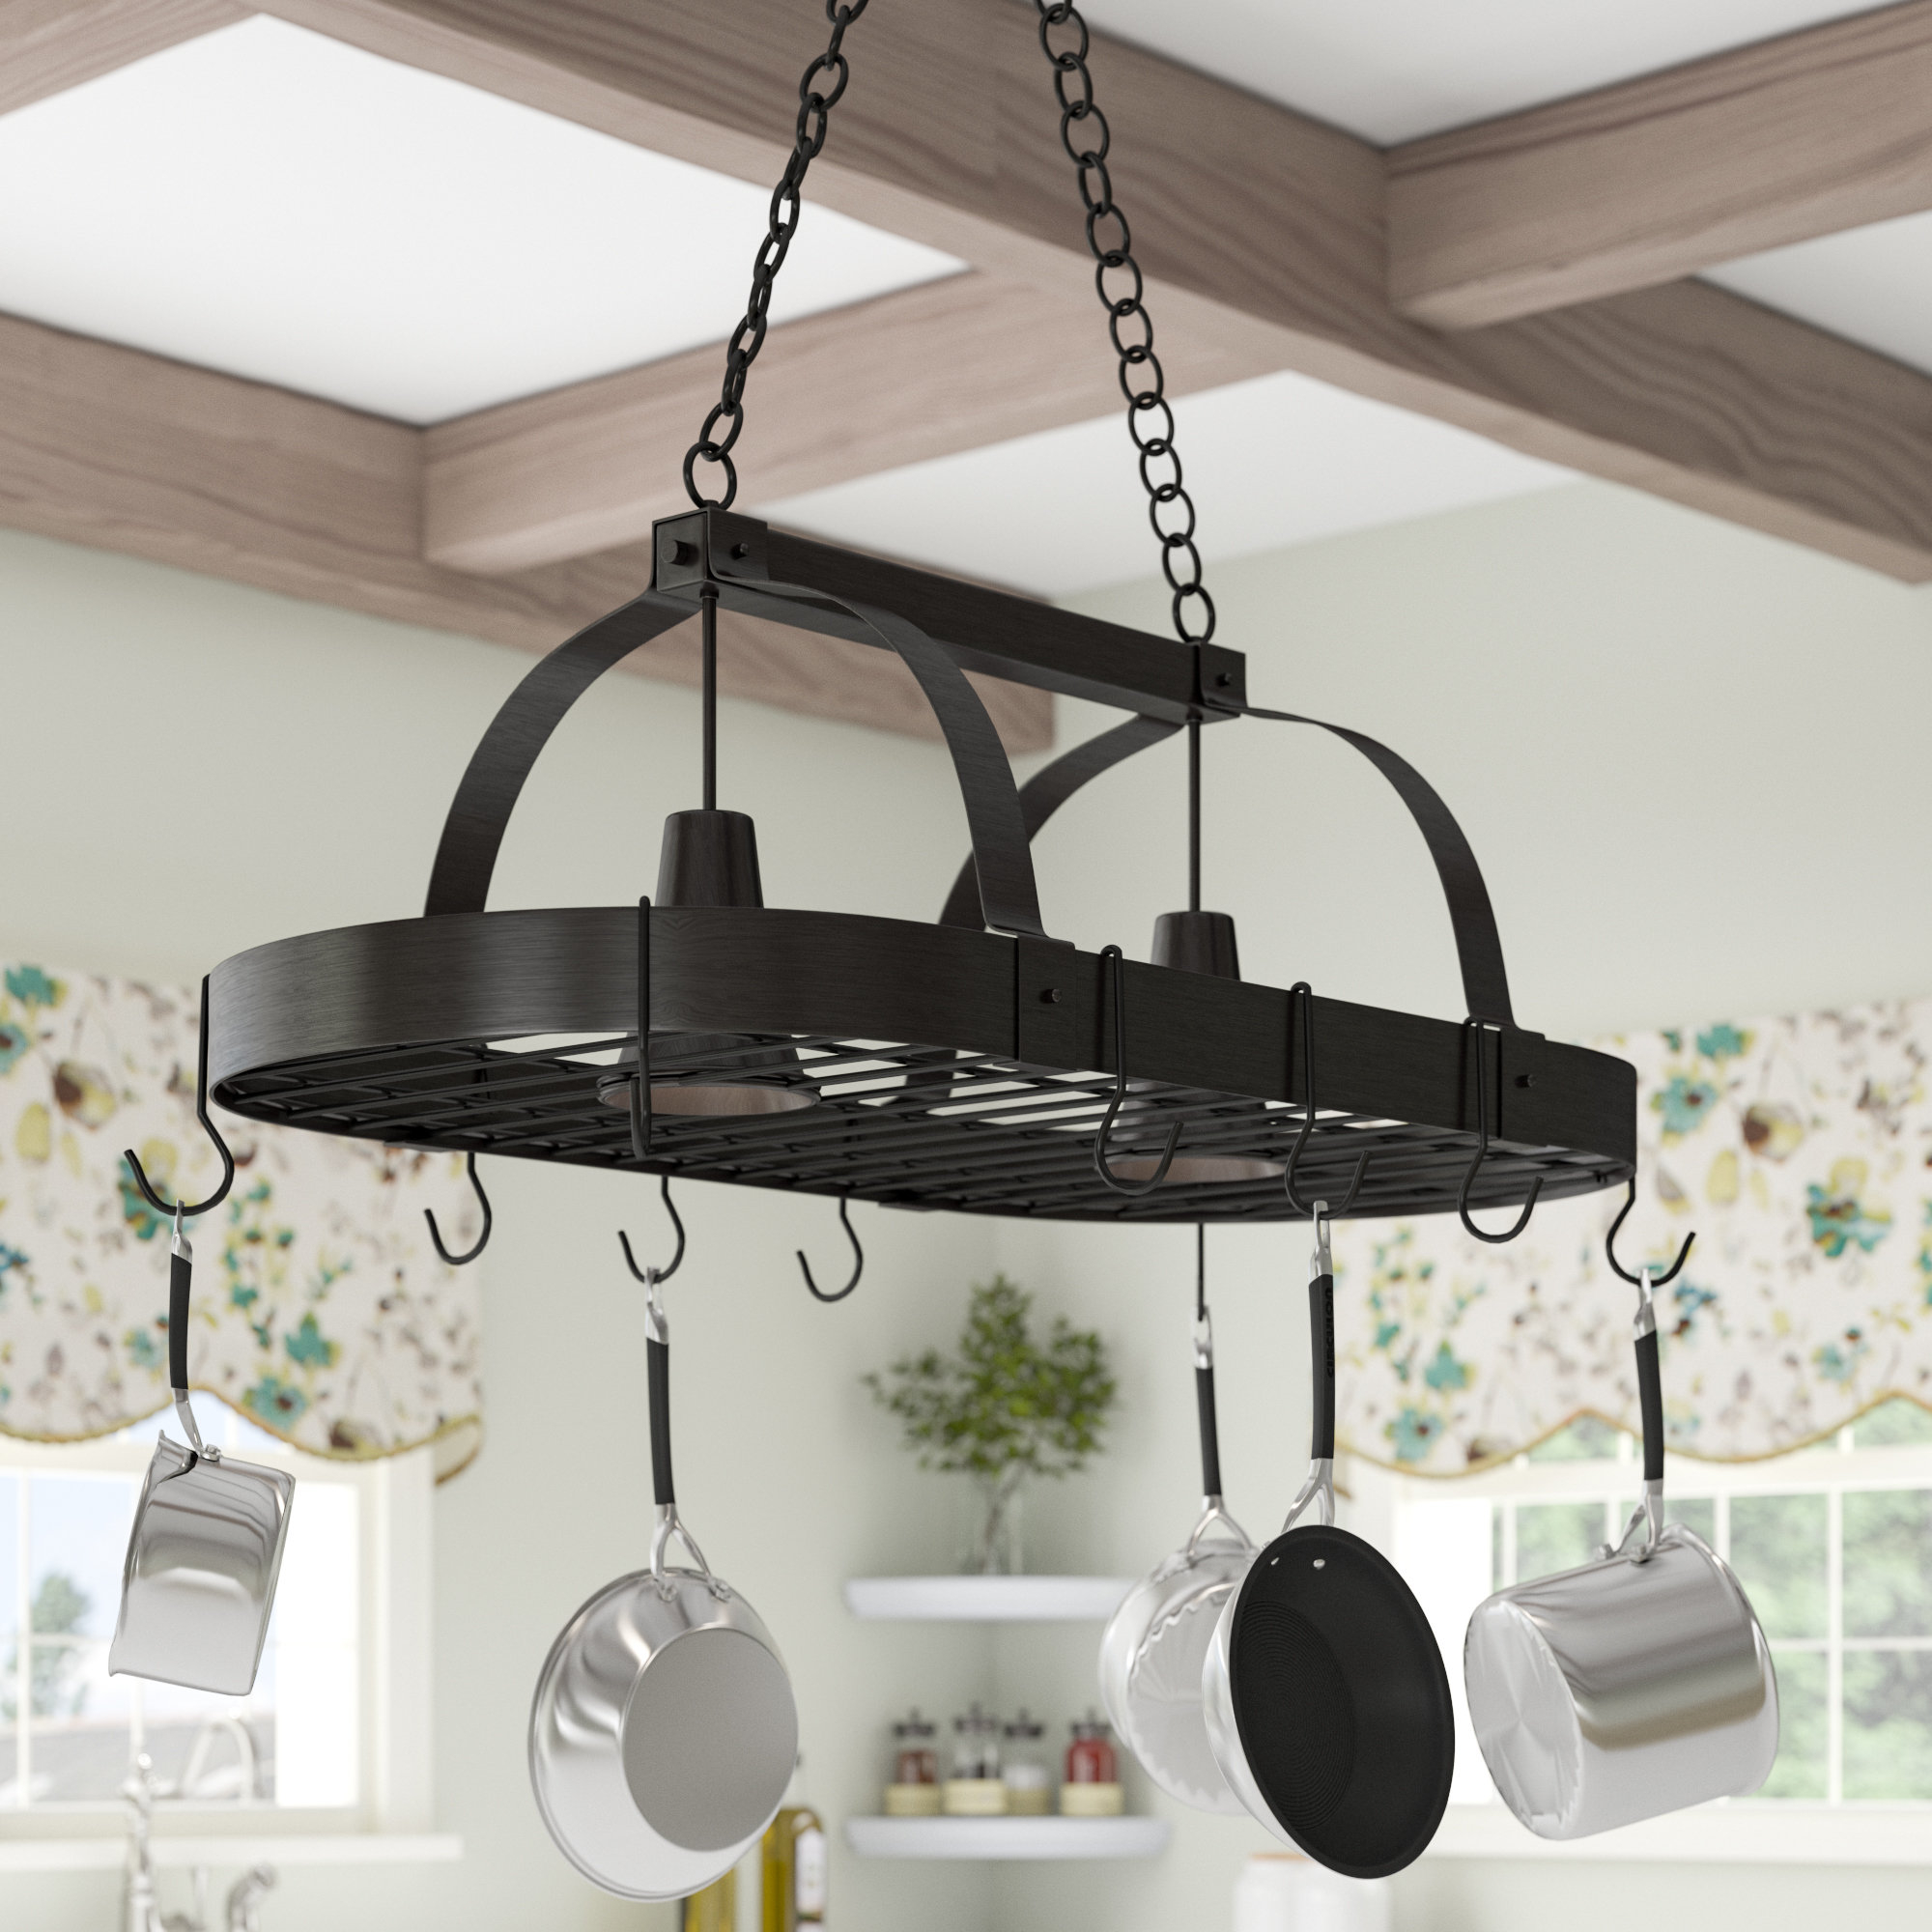 Dar Home Co 2 Light Kitchen Pot Rack Reviews Wayfair